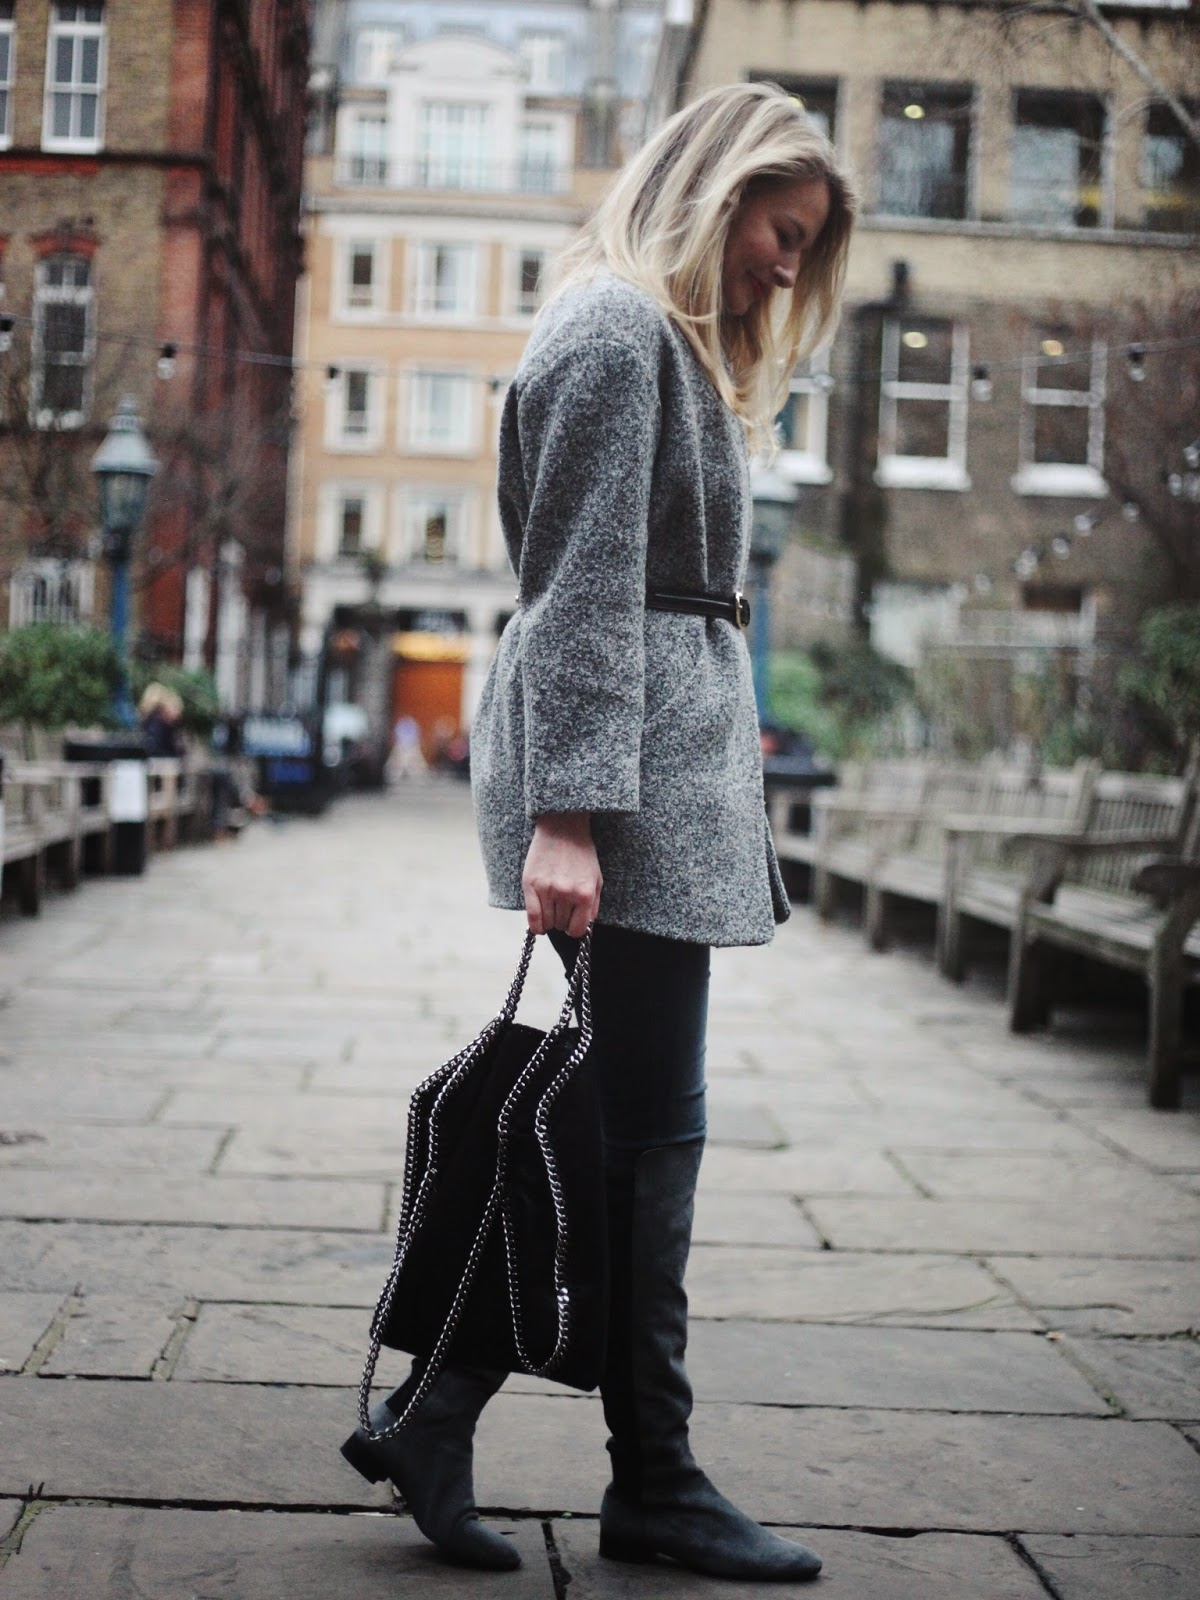 black stelle mccartney falabella bag, iro candie coat, grey over the knee boots, overknee boots grey, iro coat, grey iro coat, belted coat, street style london, london blogger